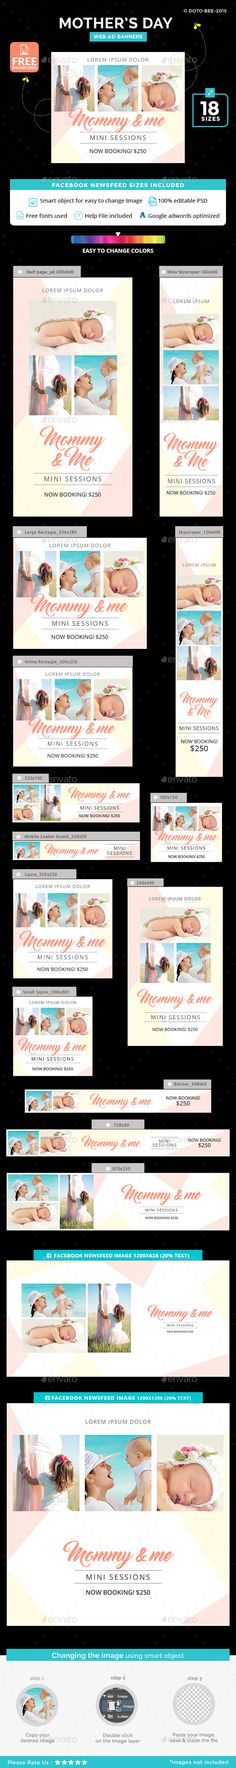 Mothers Day Banners — Photoshop PSD #love #mother's day • Available here → https://graphicriver.net/item/mothers-day-banners/19901637?ref=pxcr